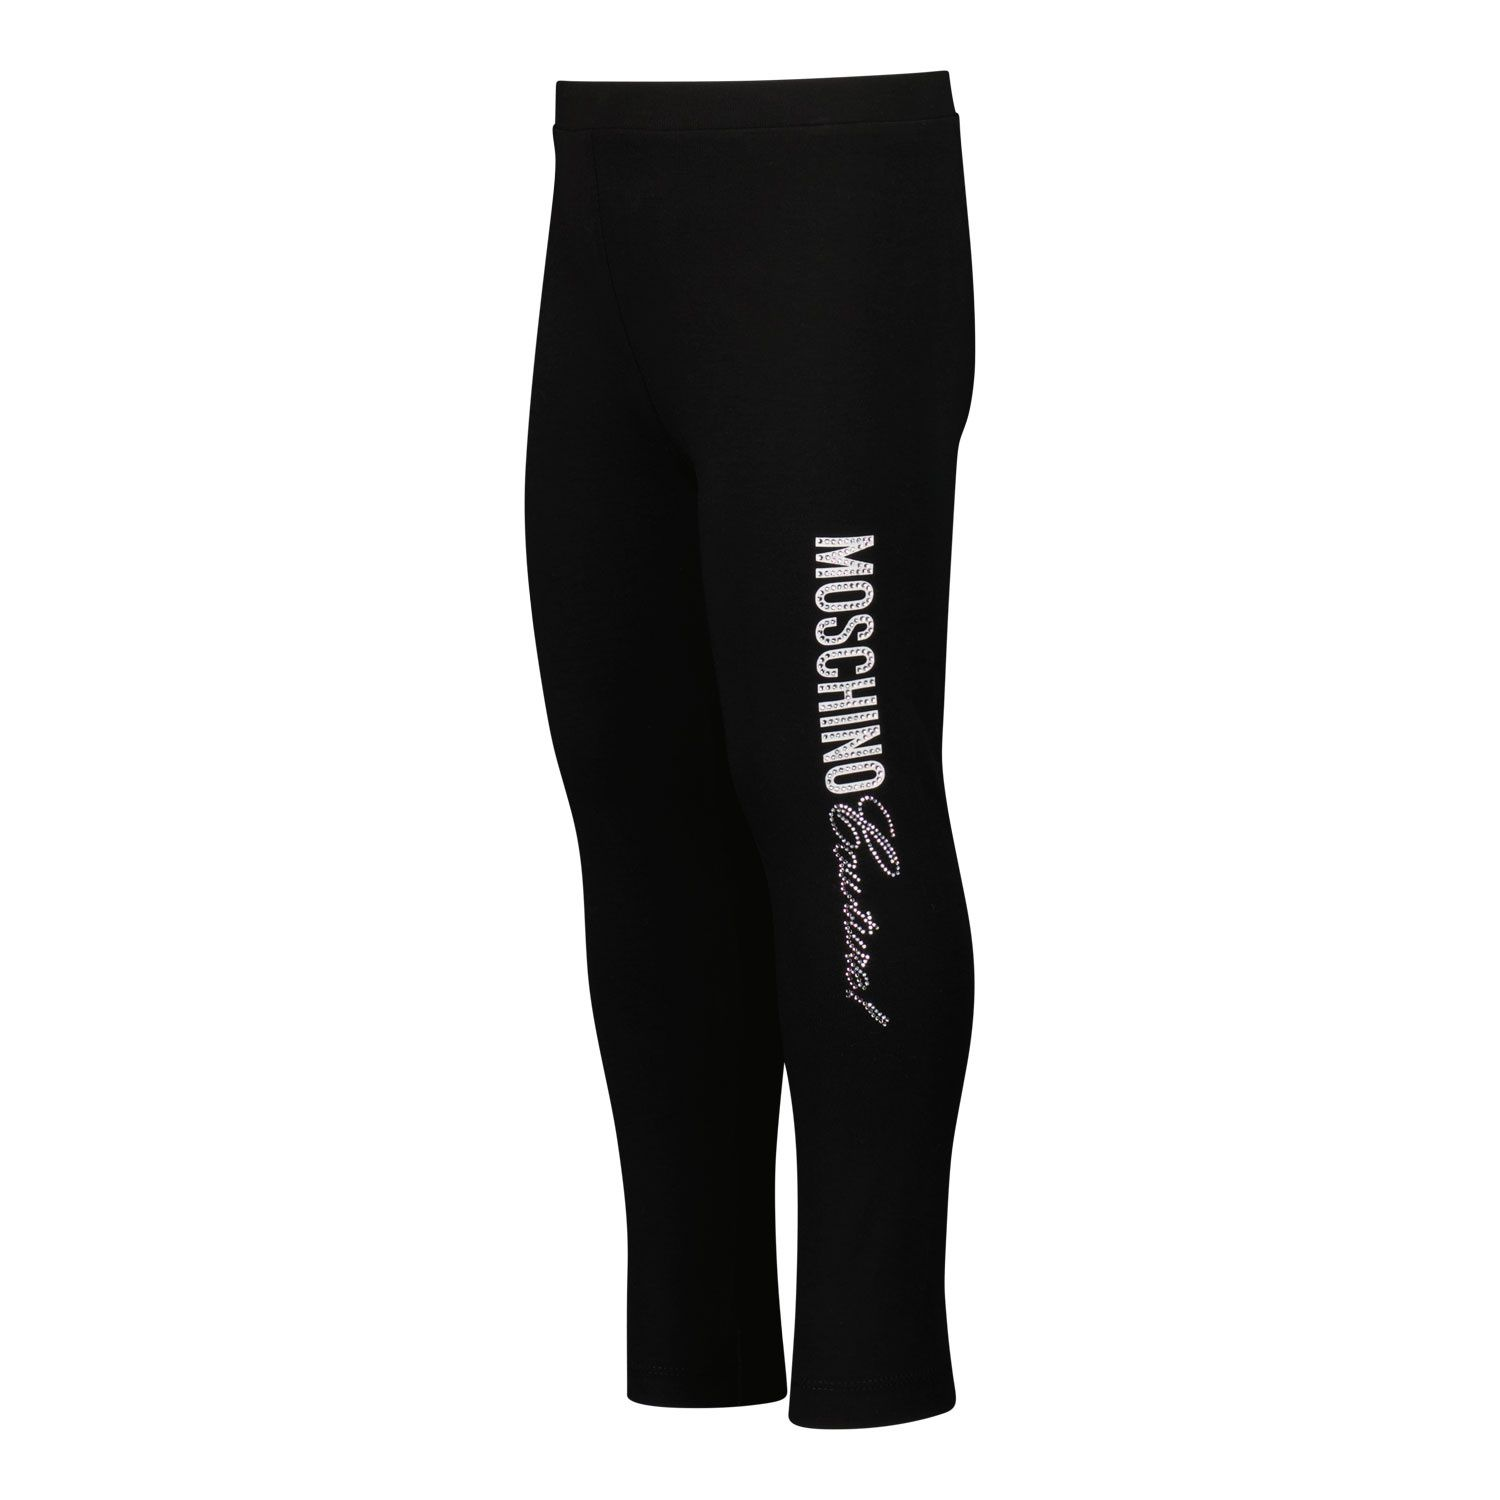 Picture of Moschino MEP02N baby legging black